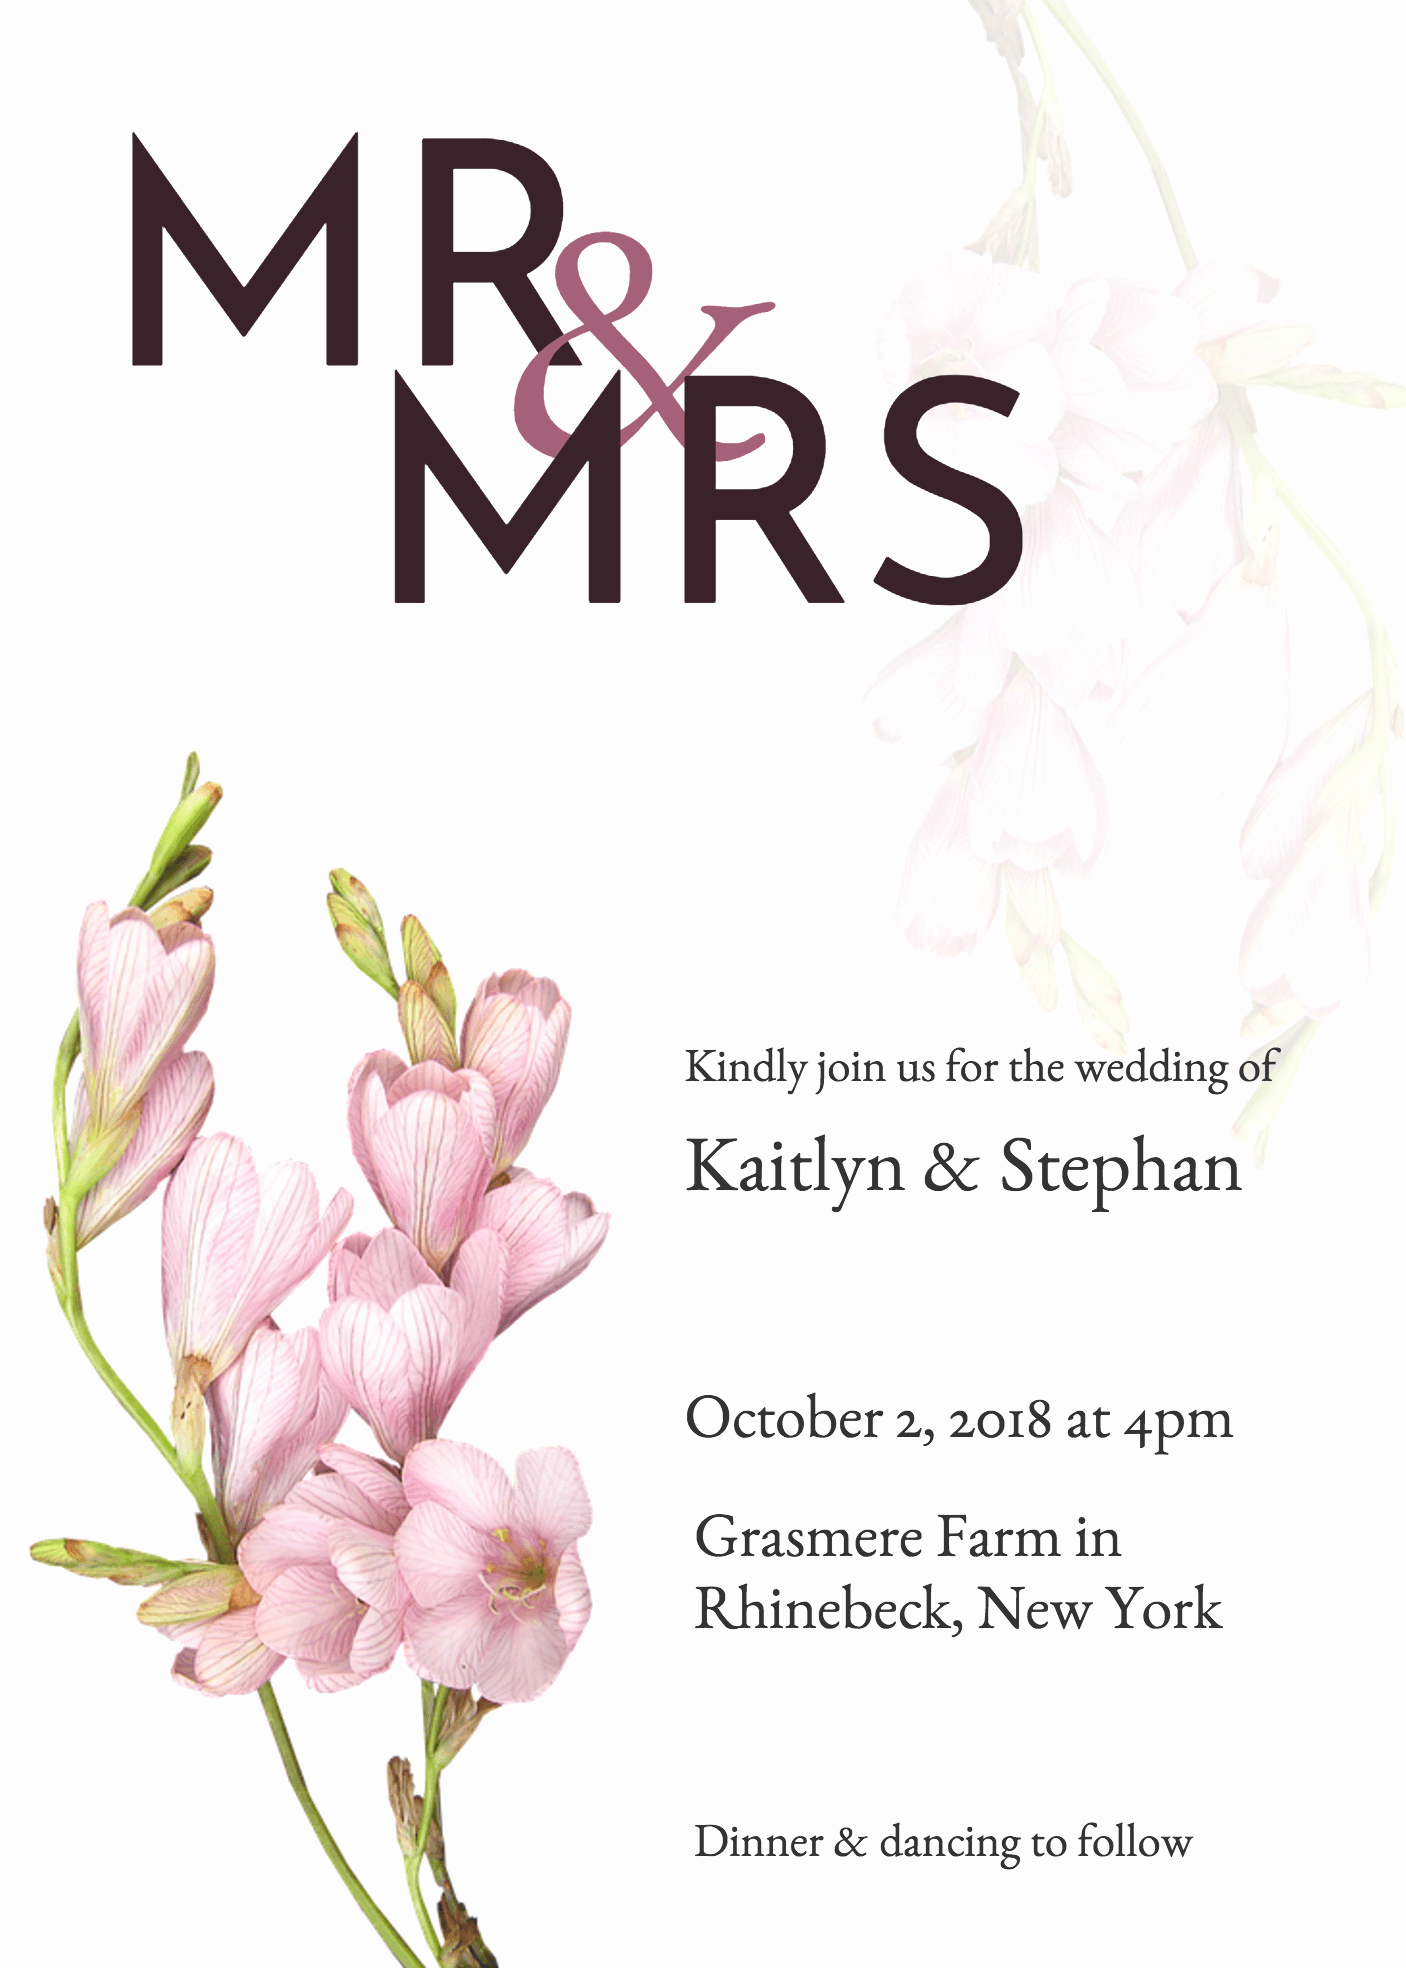 Wedding Invitation List Templates Luxury 19 Diy Bridal Shower and Wedding Invitation Templates